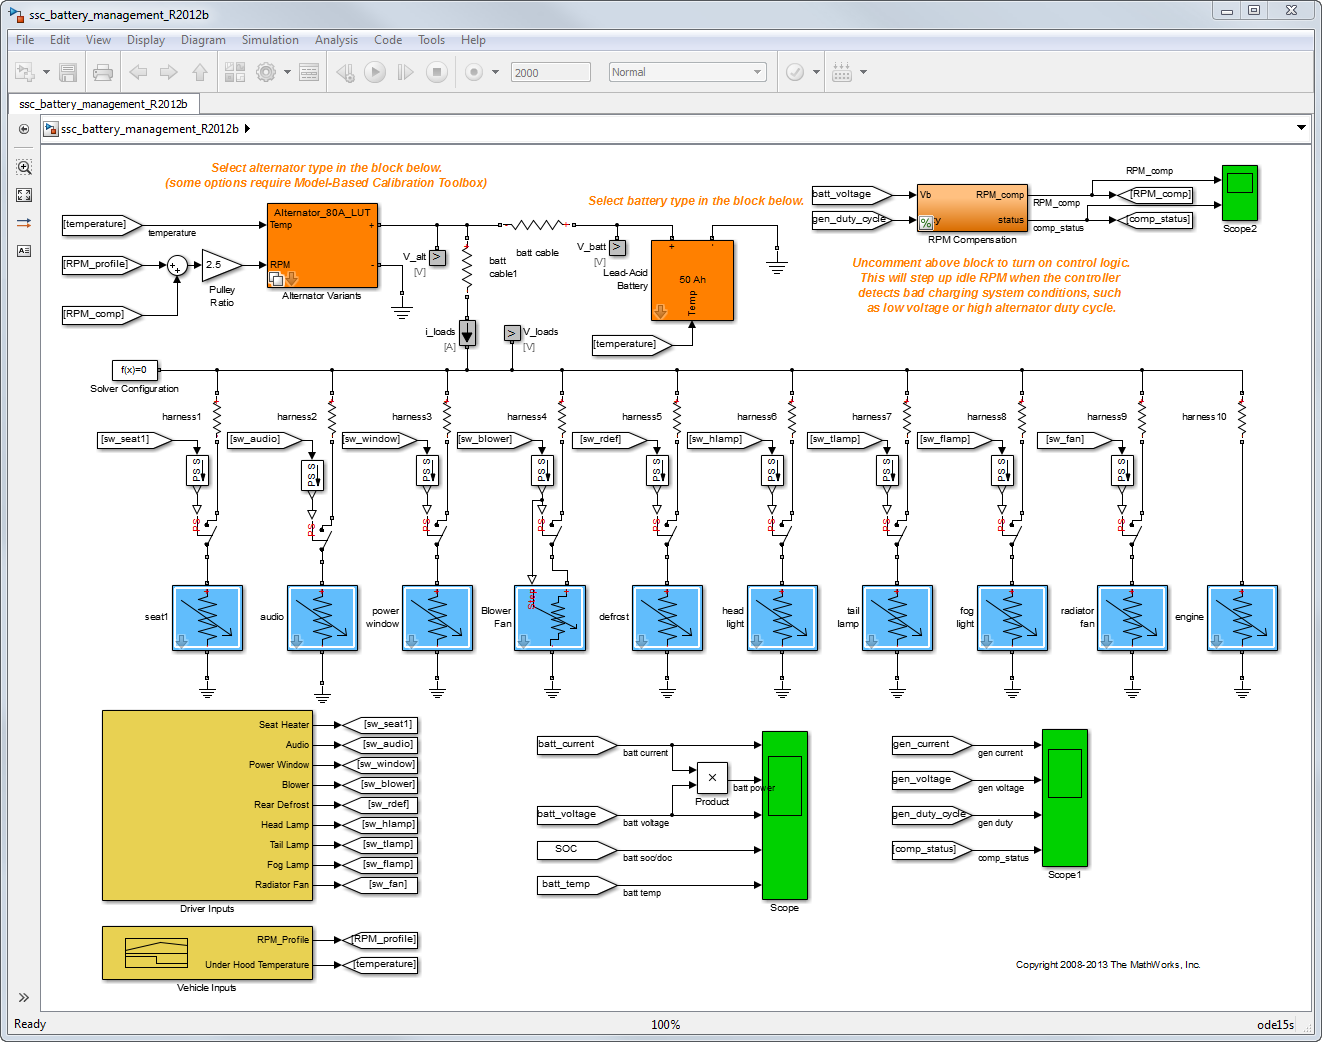 Automotive Electrical System Simulation and Control - File Exchange